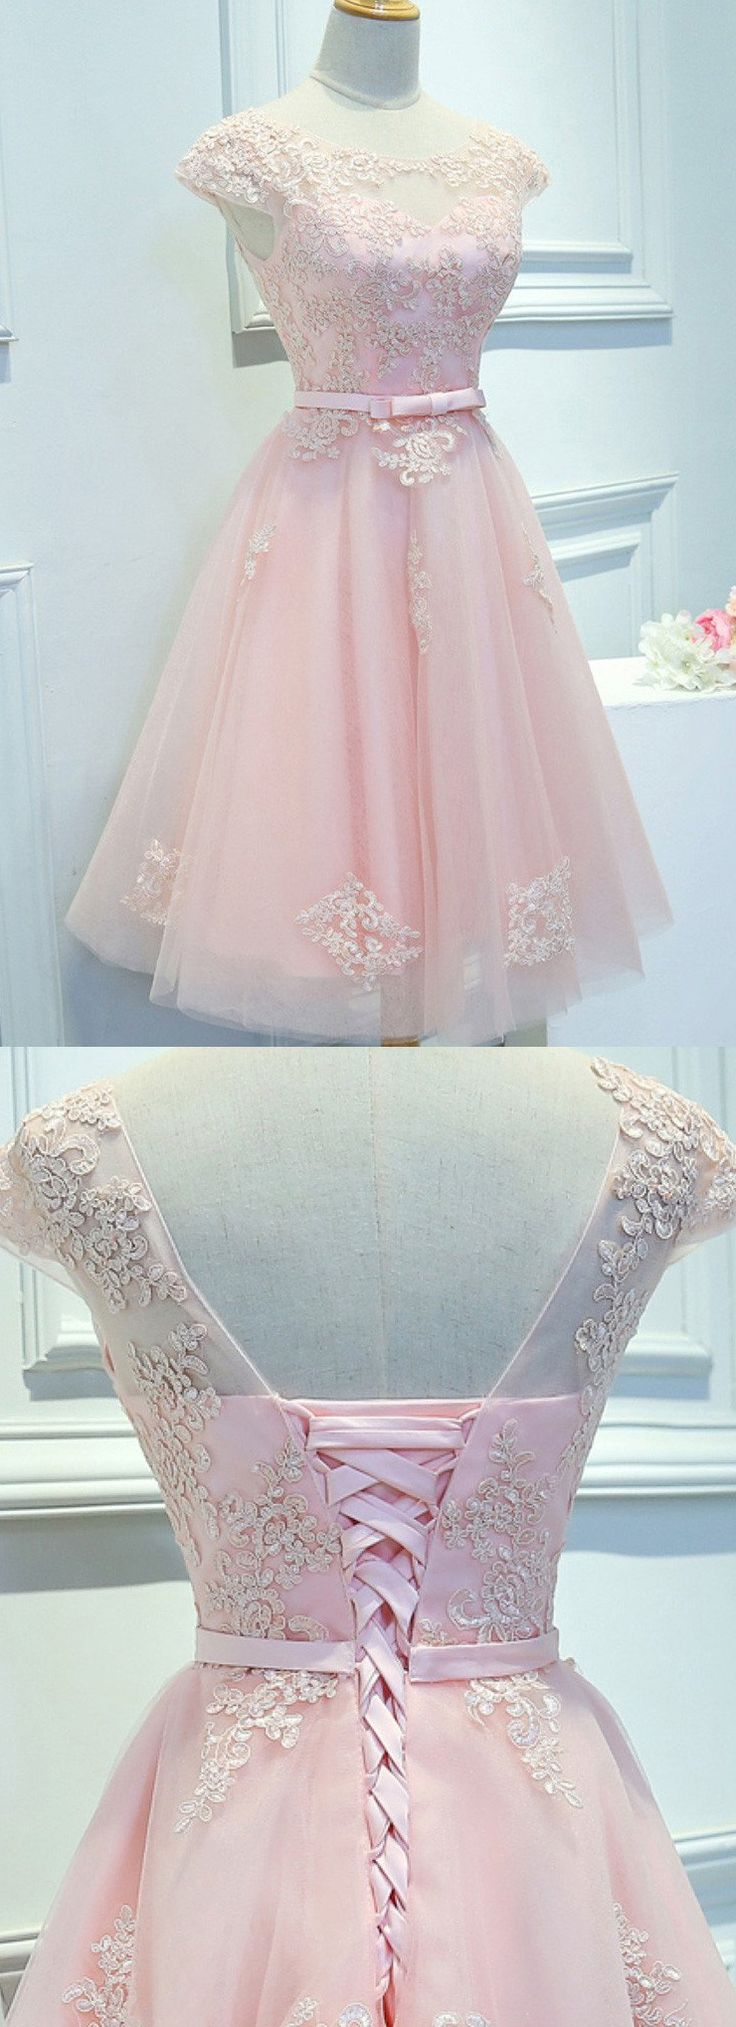 best pink prom dresses images on pinterest